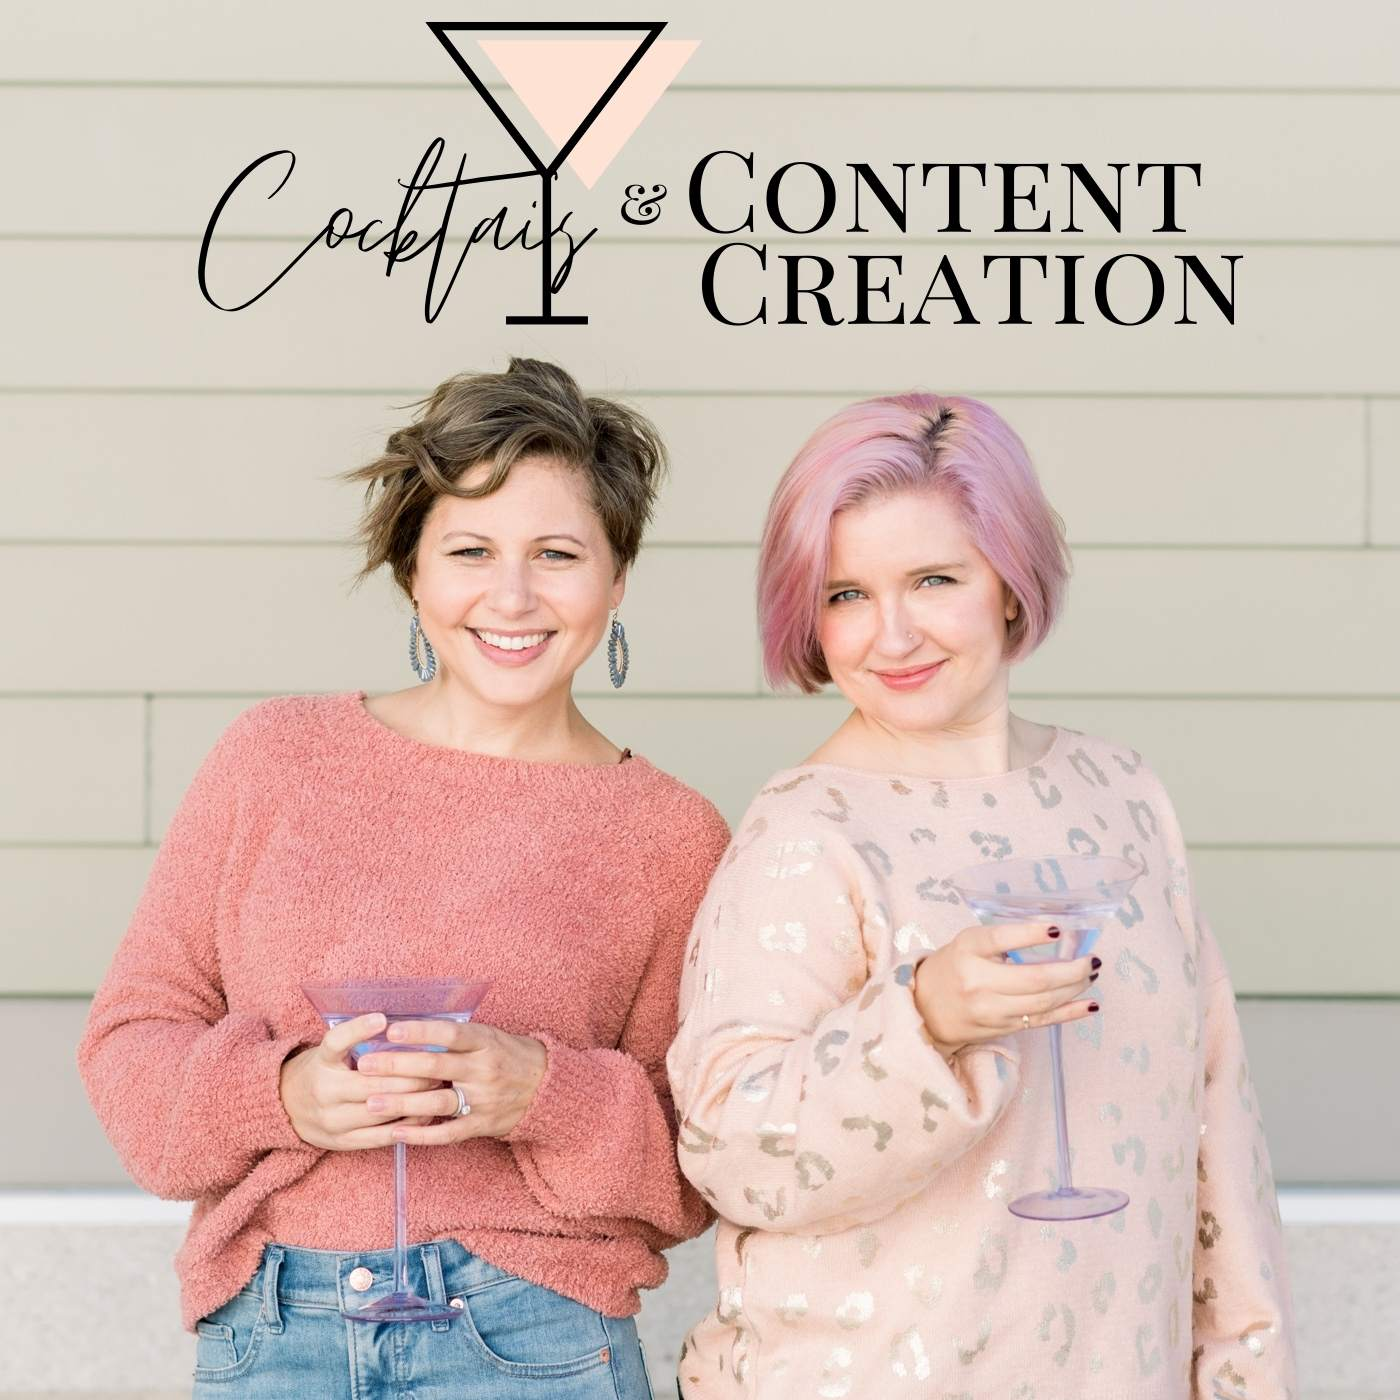 Show artwork for Cocktails & Content Creation